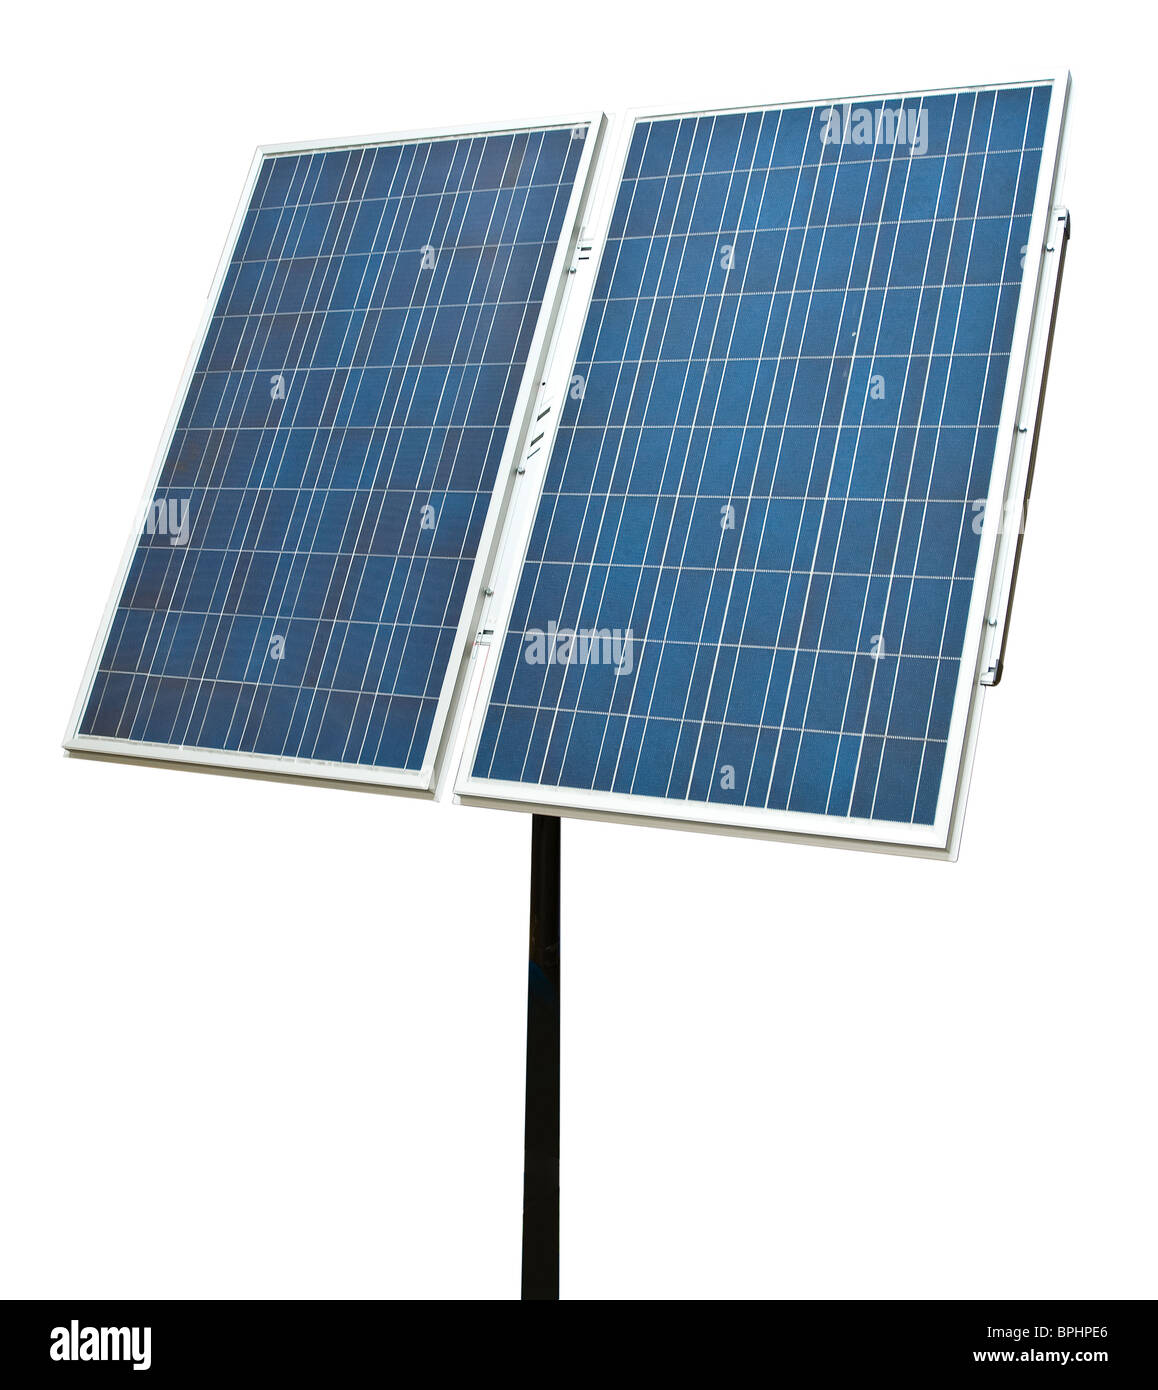 Solar Panel Cut Out - Stock Image